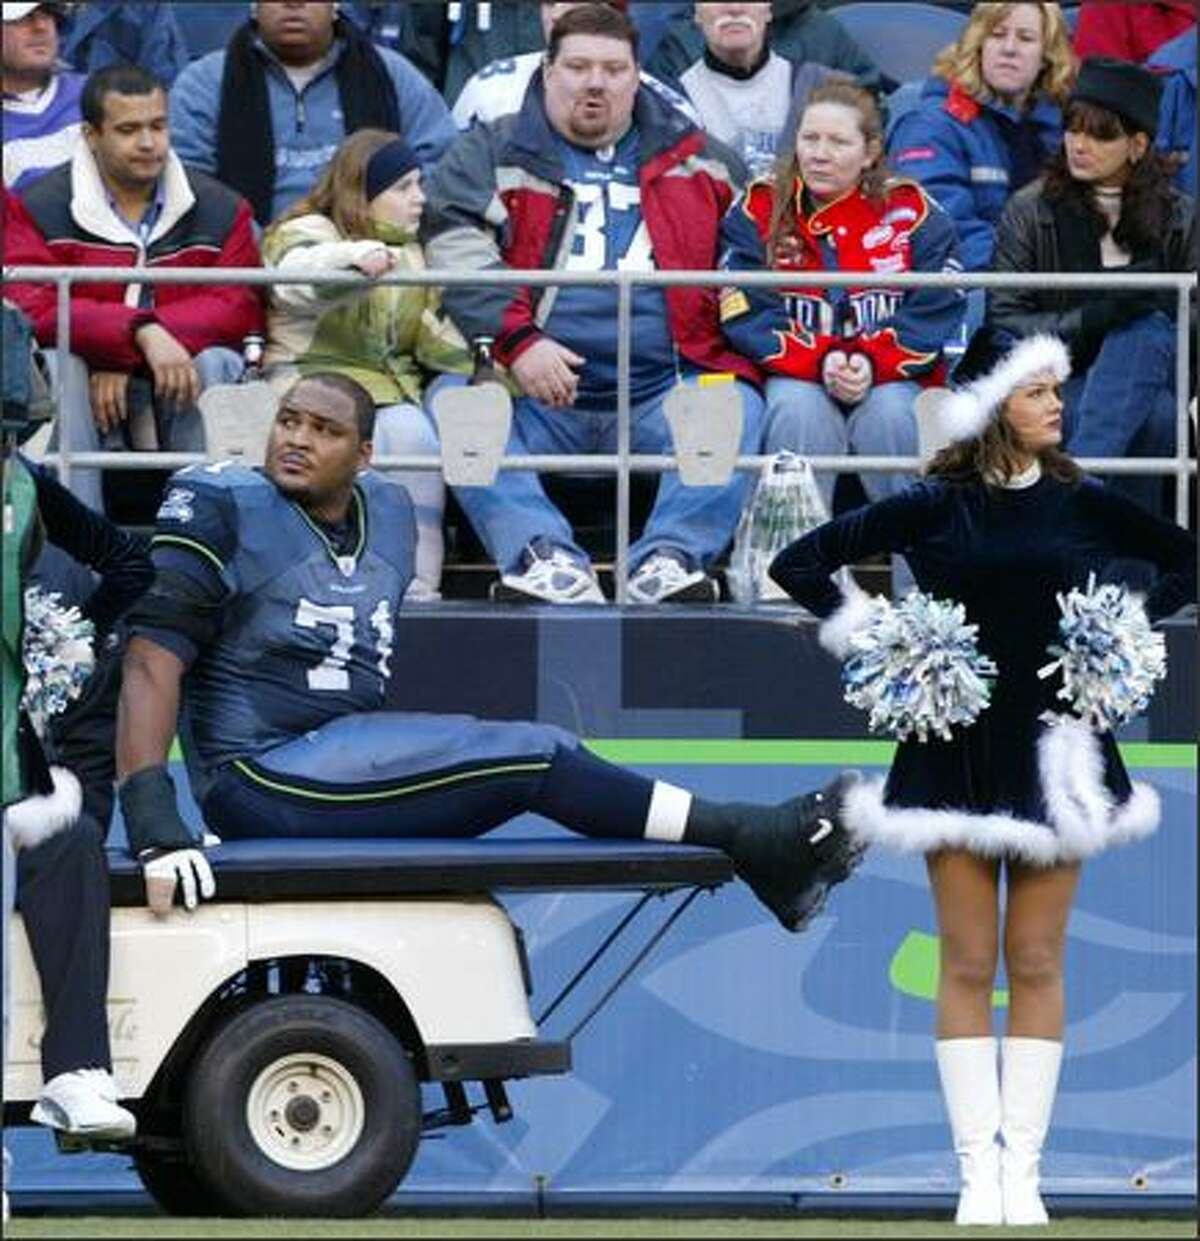 Seahawks Pro Bowl offensivie tackle Walter Jones is carted off the field after twisting his left ankle during the third quarter of the Hawks' game against the Arizona Cardinals.